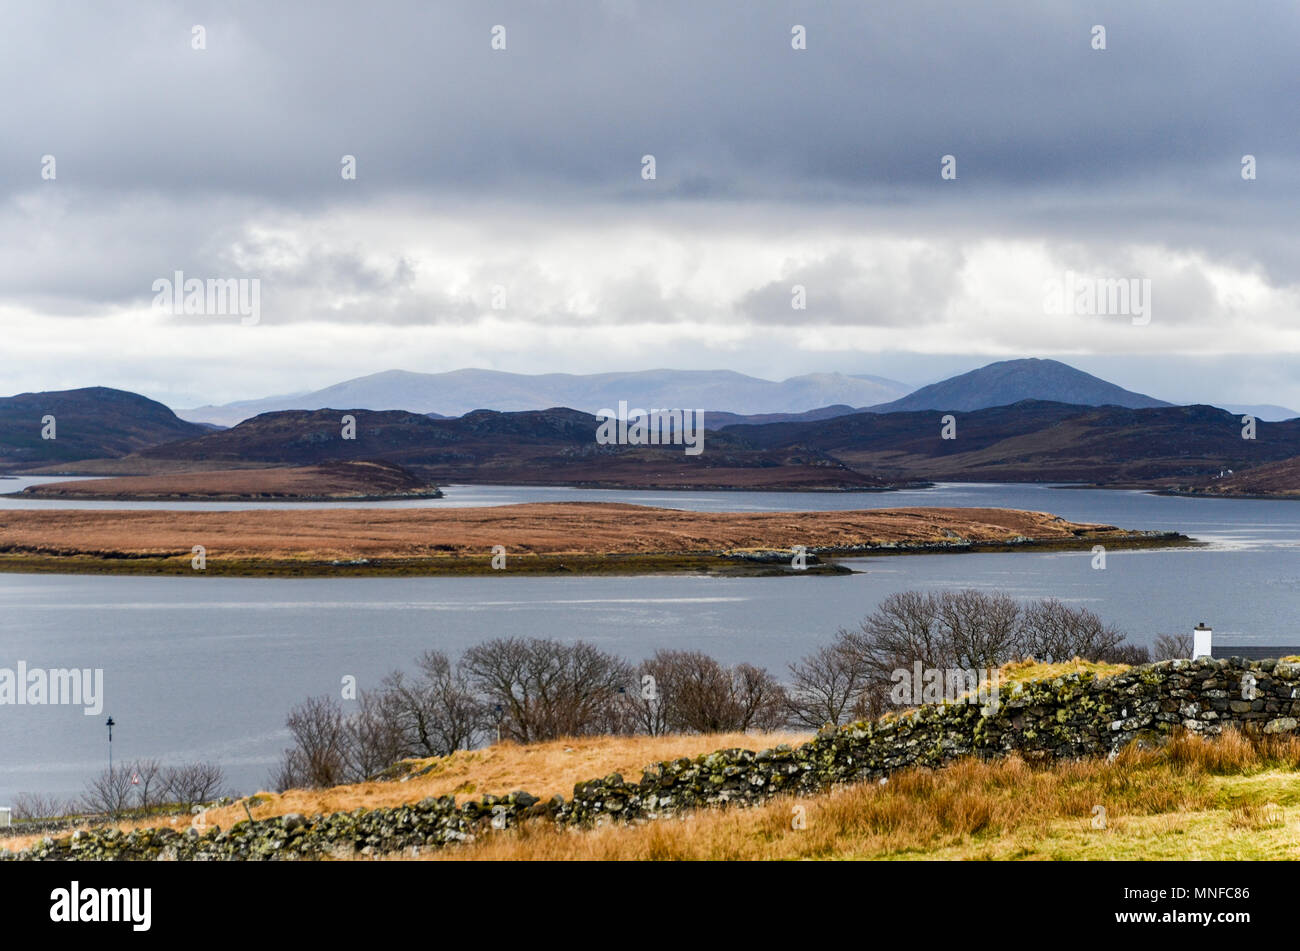 """Landscape in the Outer Hebrides near Callanish. Local people call her """"Sleeping Beauty"""" in English or """"Cailleach na Mointeach"""" in Gaelic. Stock Photo"""